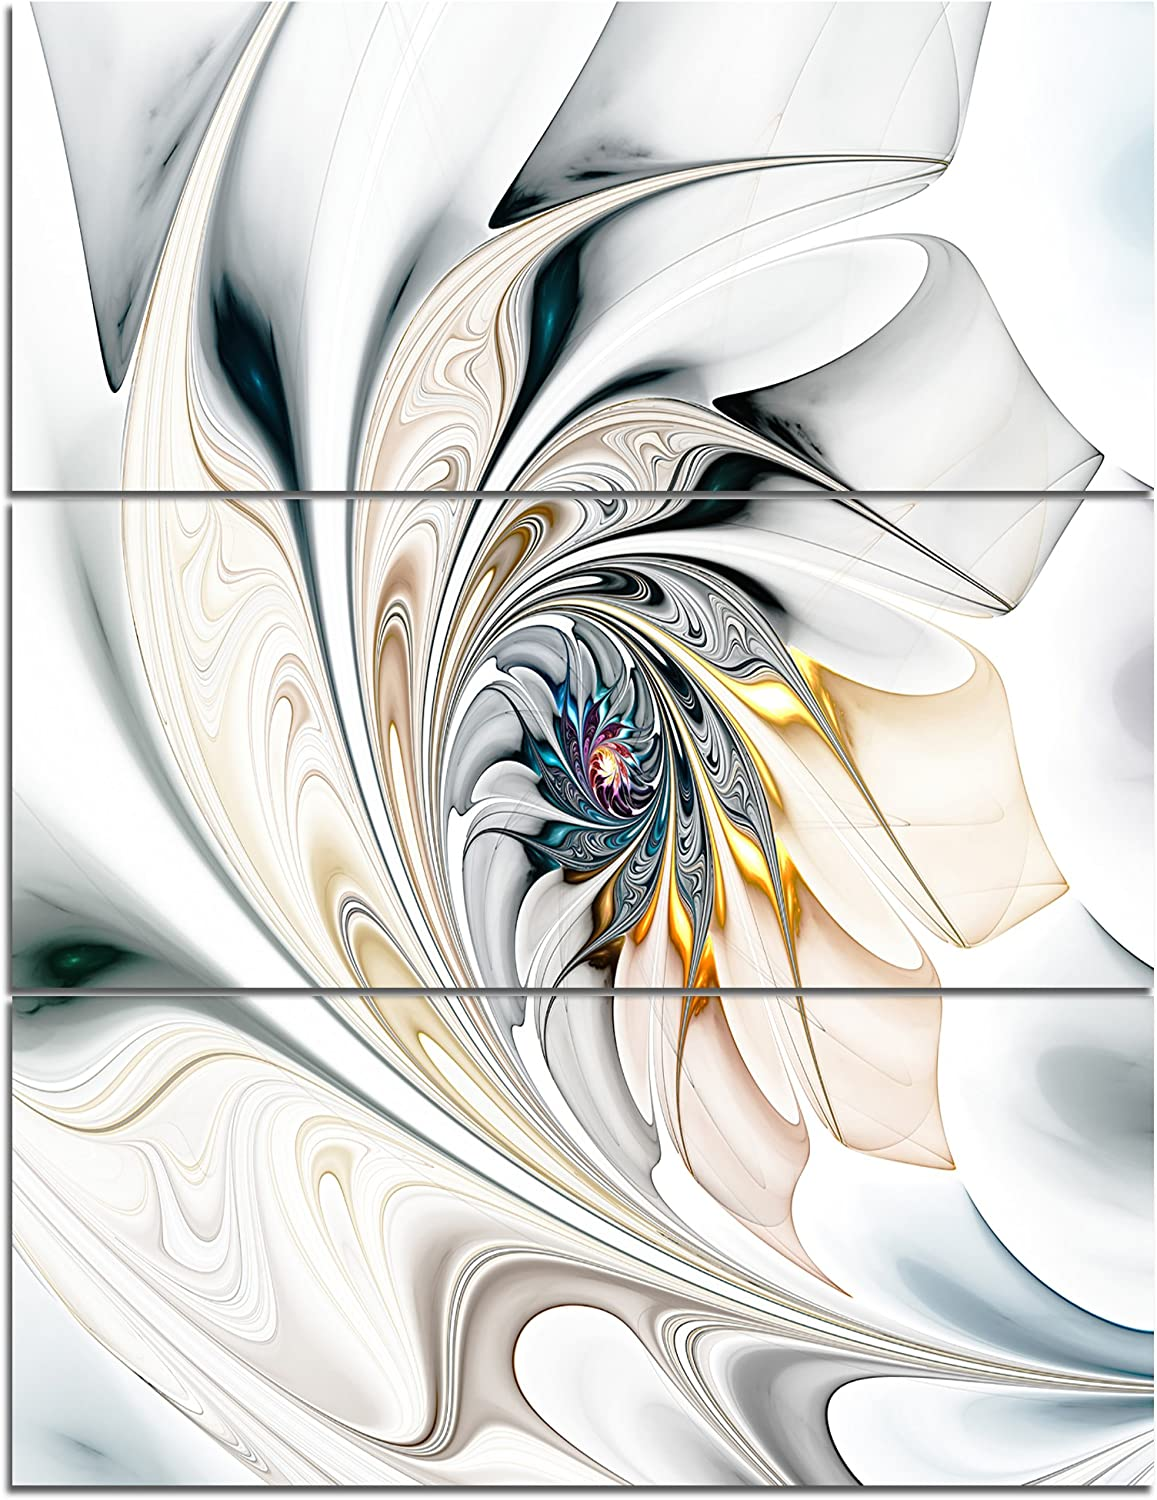 Designart Stained Glass Large Floral Wall Art Canvas-28X36 3 Piece, 28'' H?x?36'' W?x?1'' D 3P, White